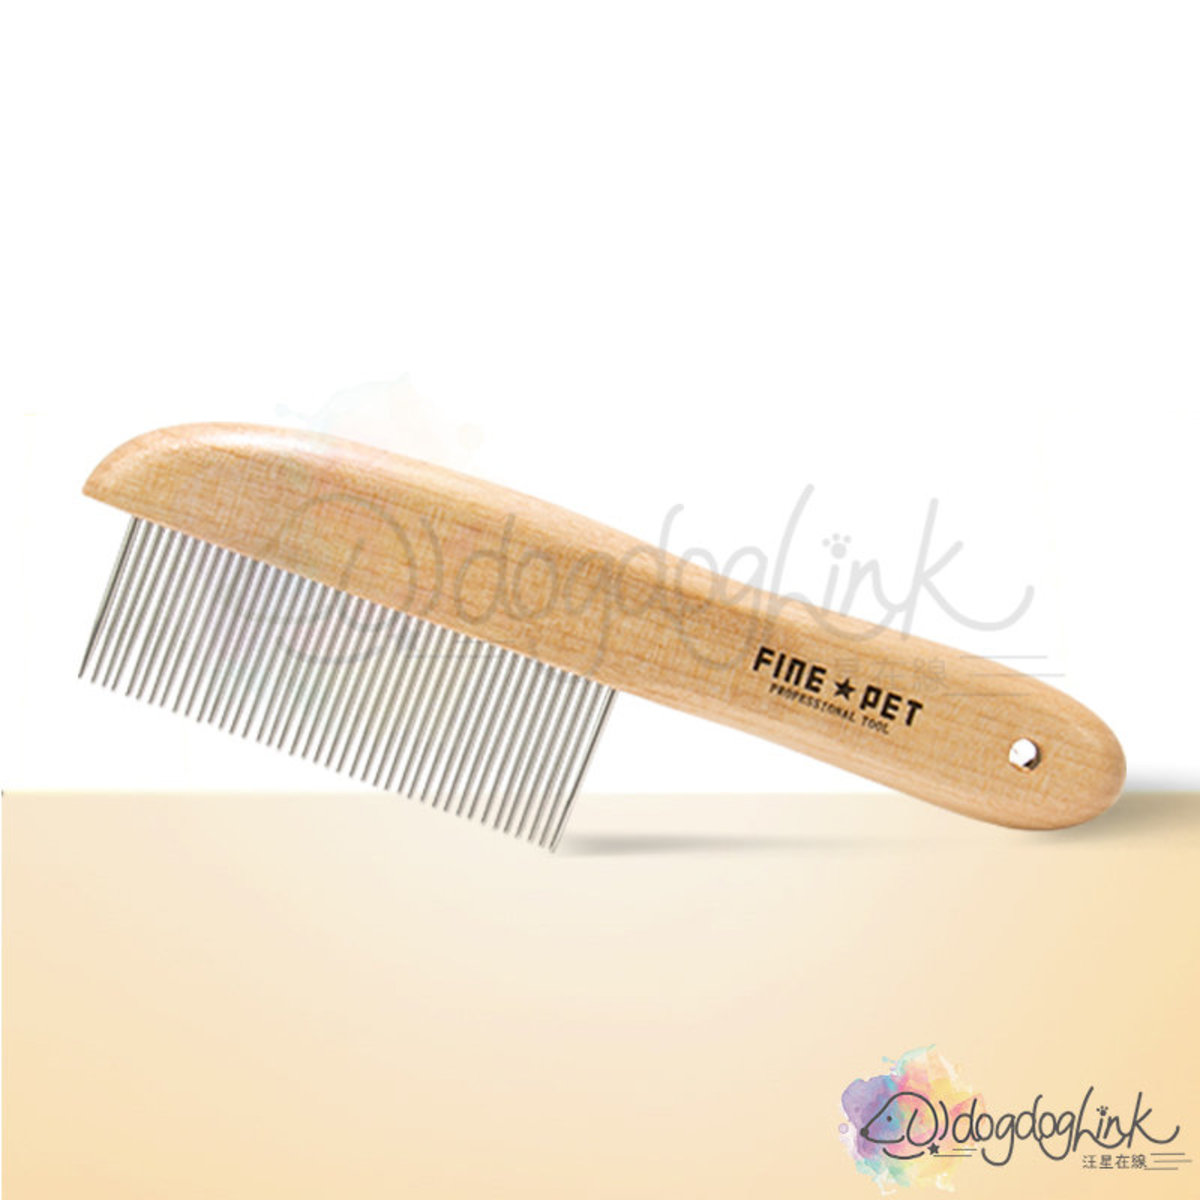 FINEPET Wooden Finishing Comb - 41pin 16*1.6cm